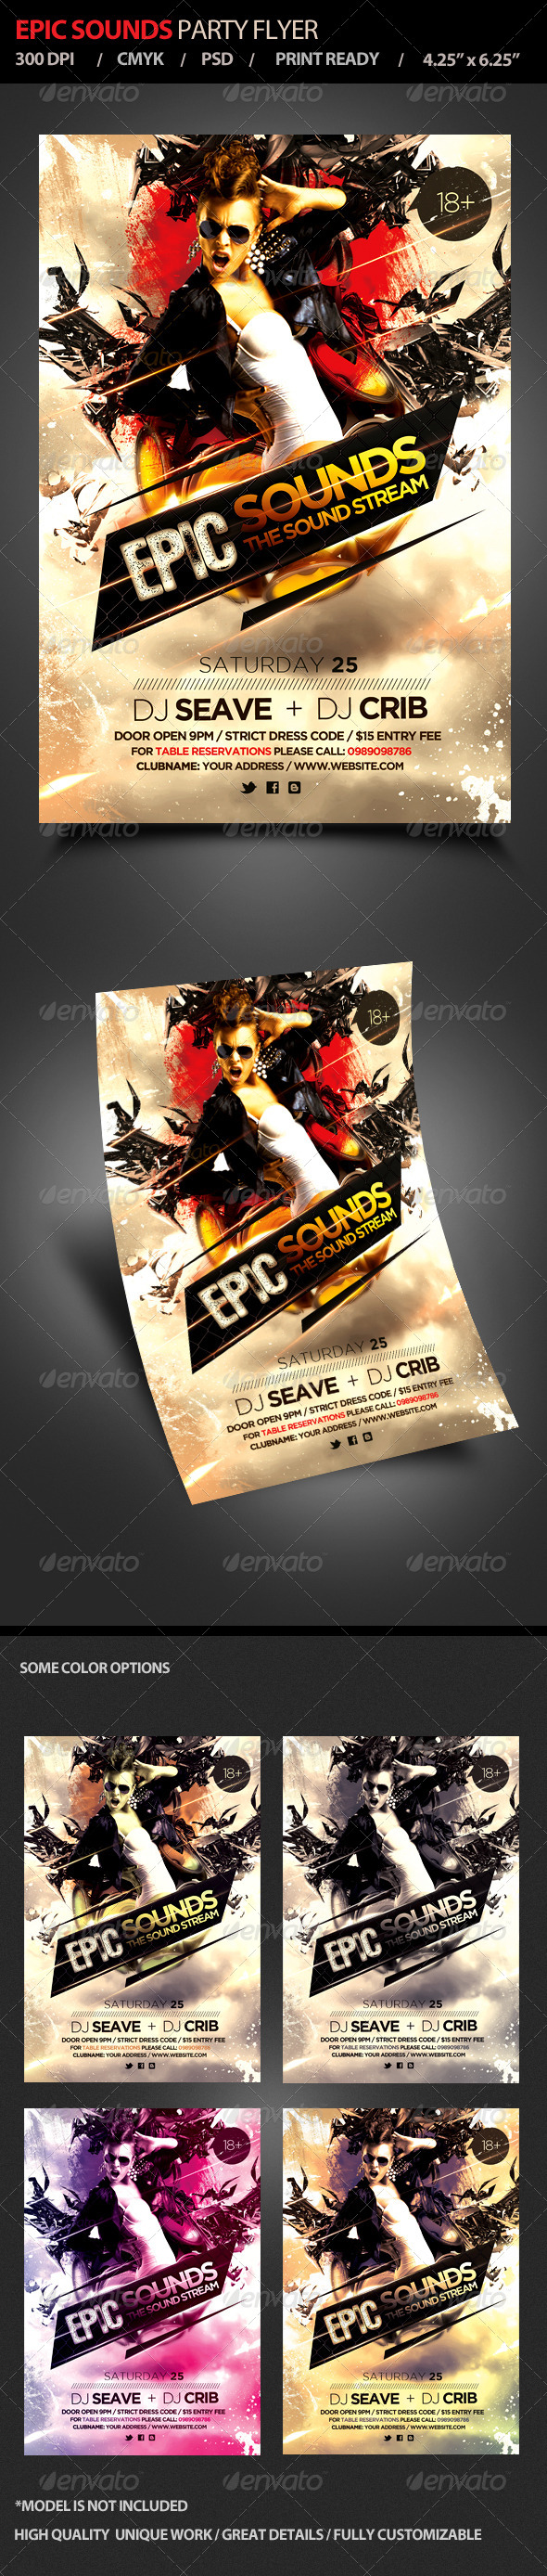 Epic Sounds Party Flyer - Flyers Print Templates